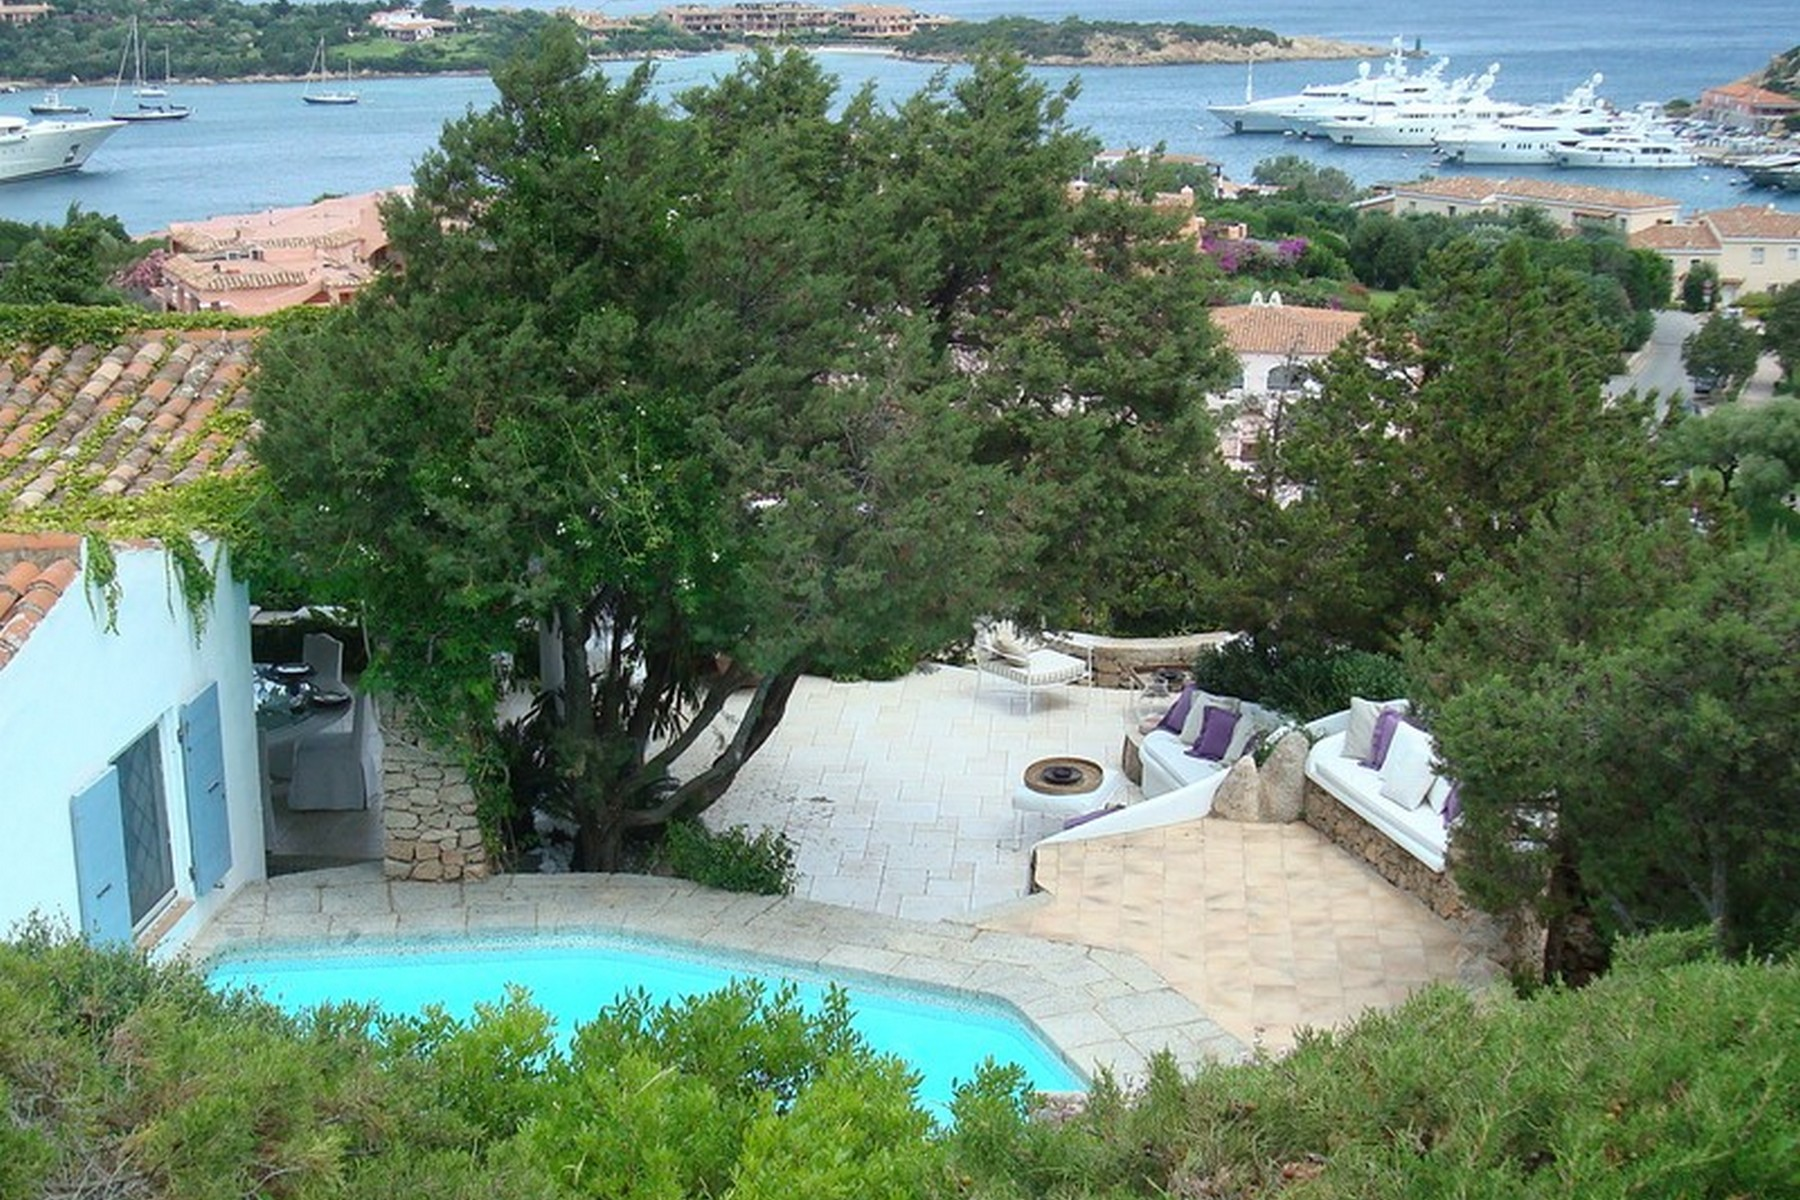 Single Family Home for Sale at Iconic Sardinia-style villa with pool Via delle Caravelle Porto Cervo, Olbia Tempio 07021 Italy